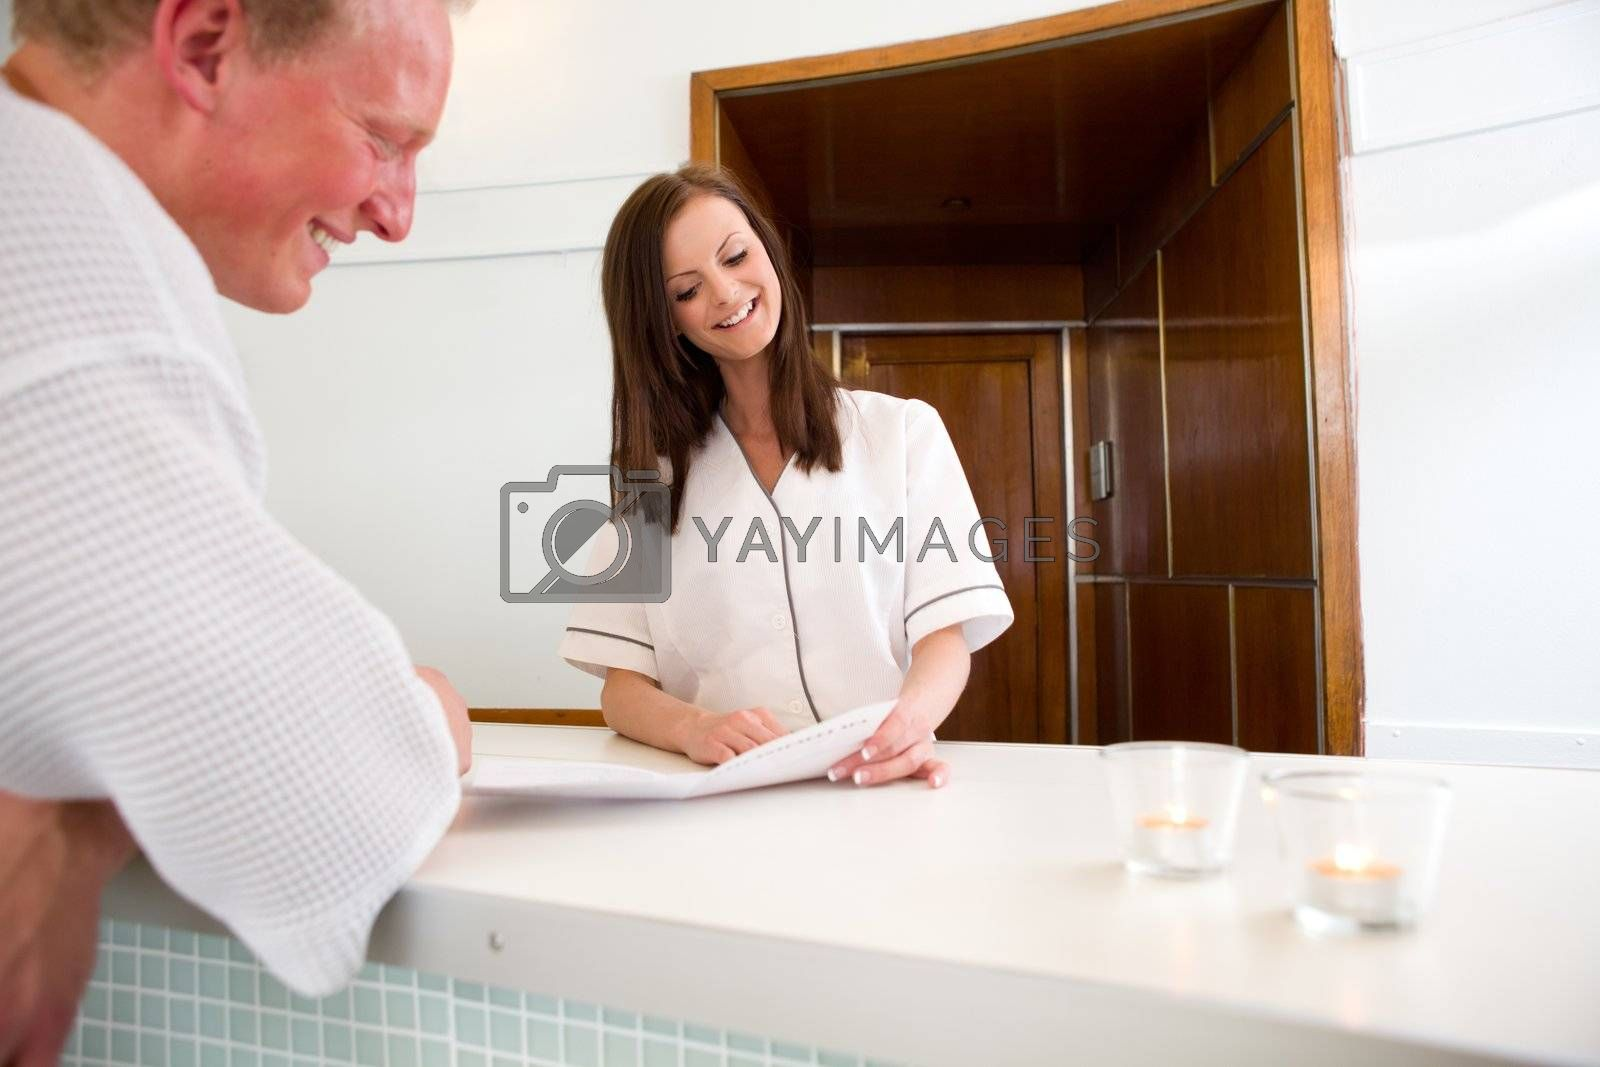 A man deciding on a package in a spa reception